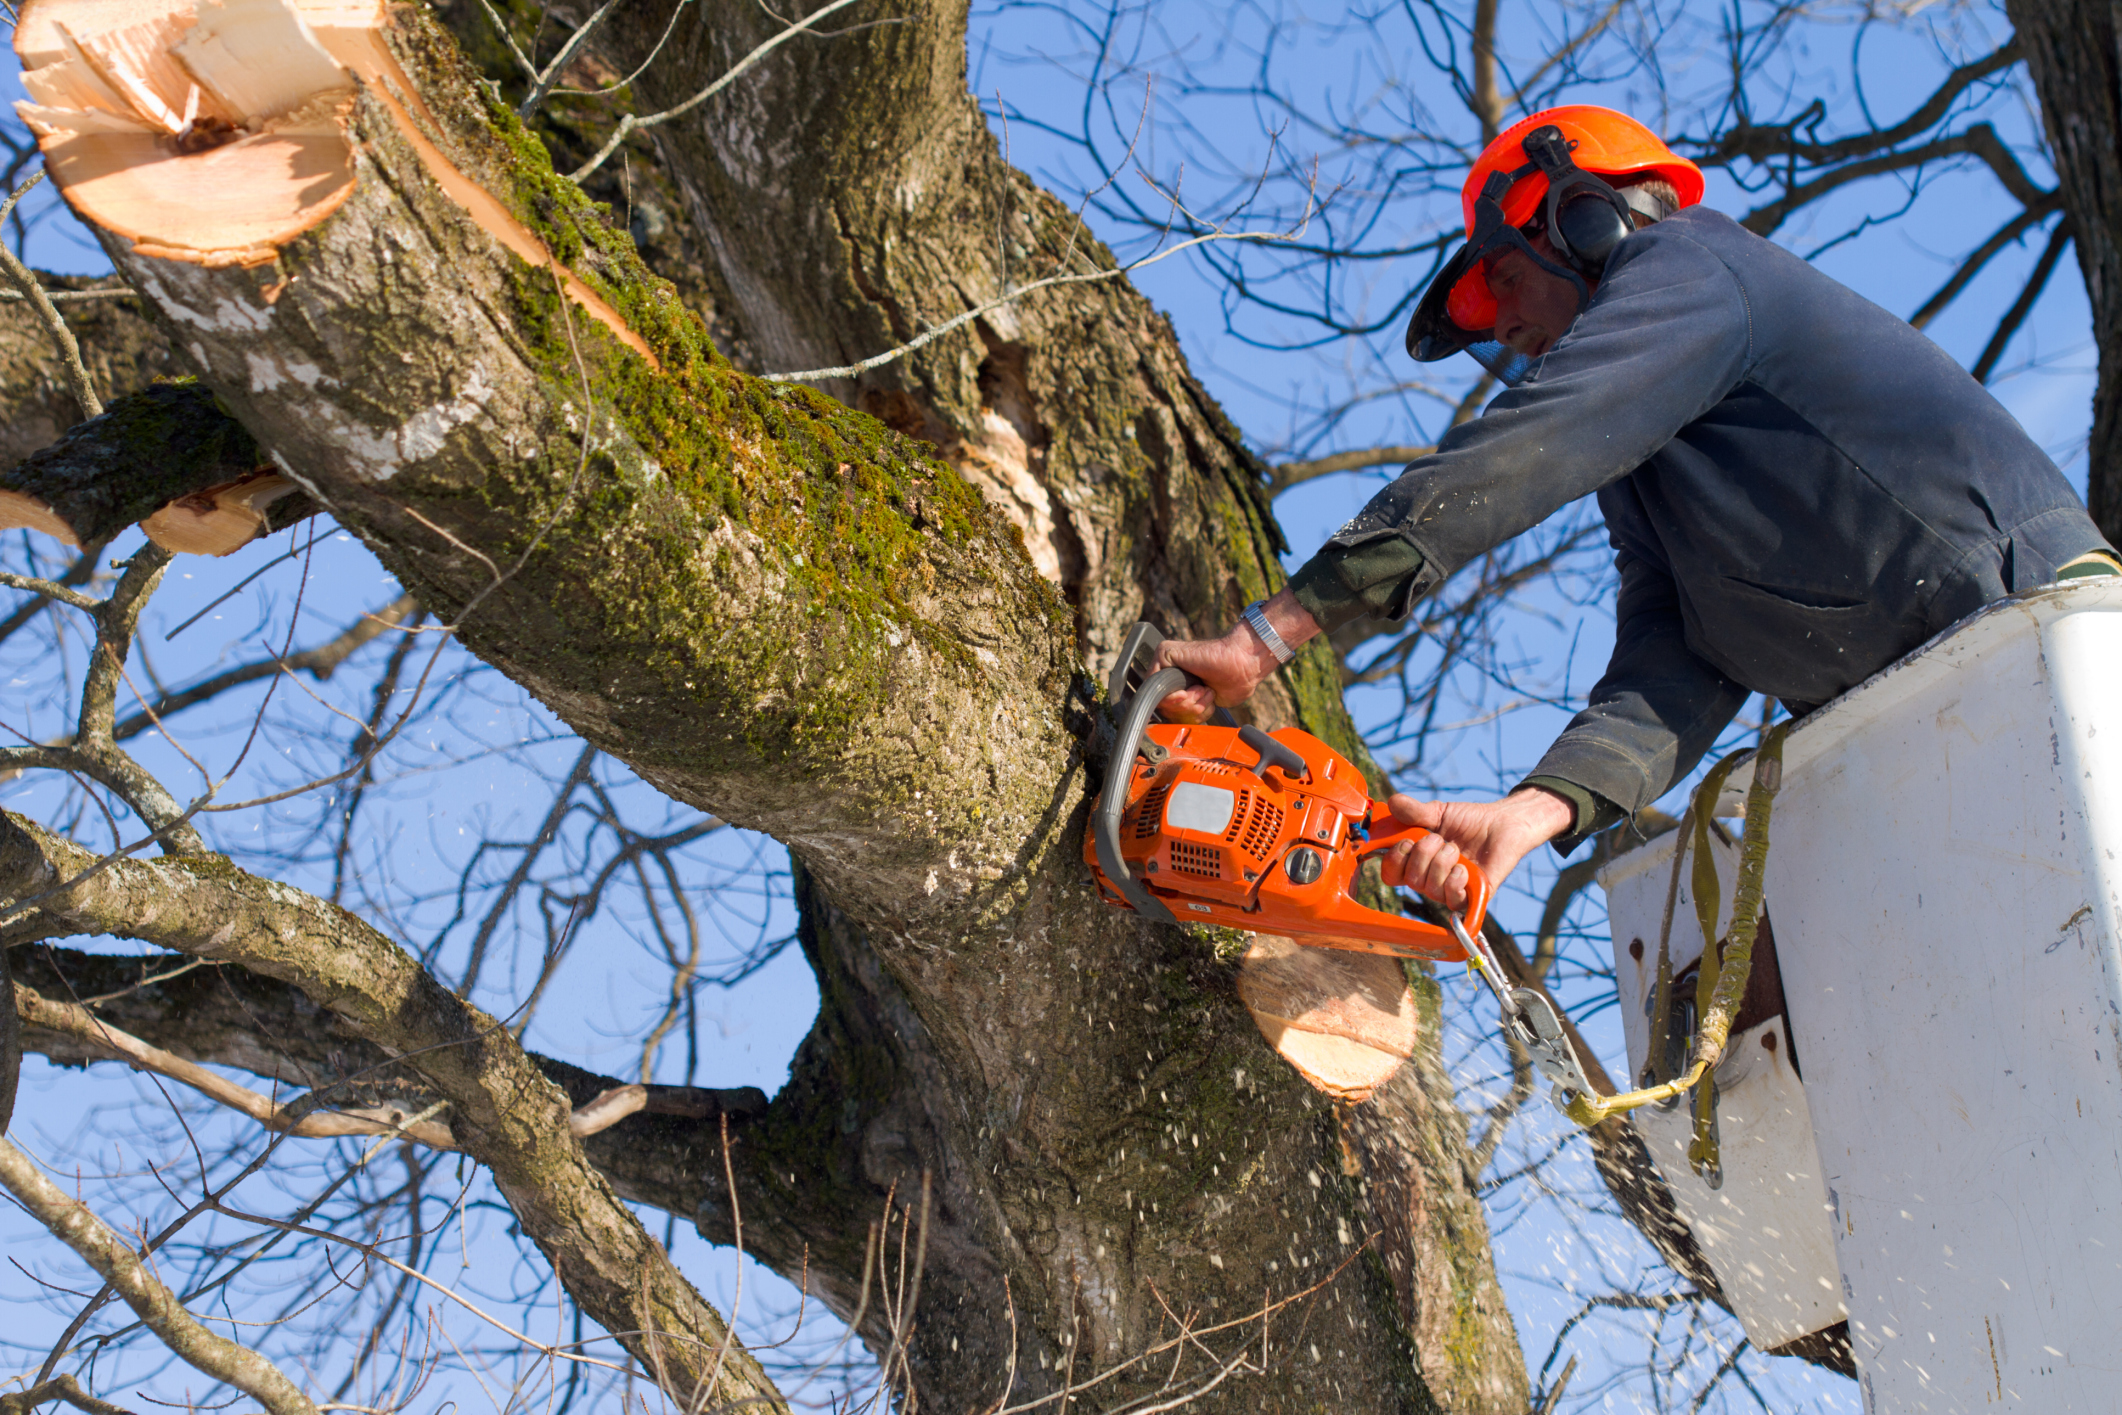 Most Important Tree Trimming Services for the Home